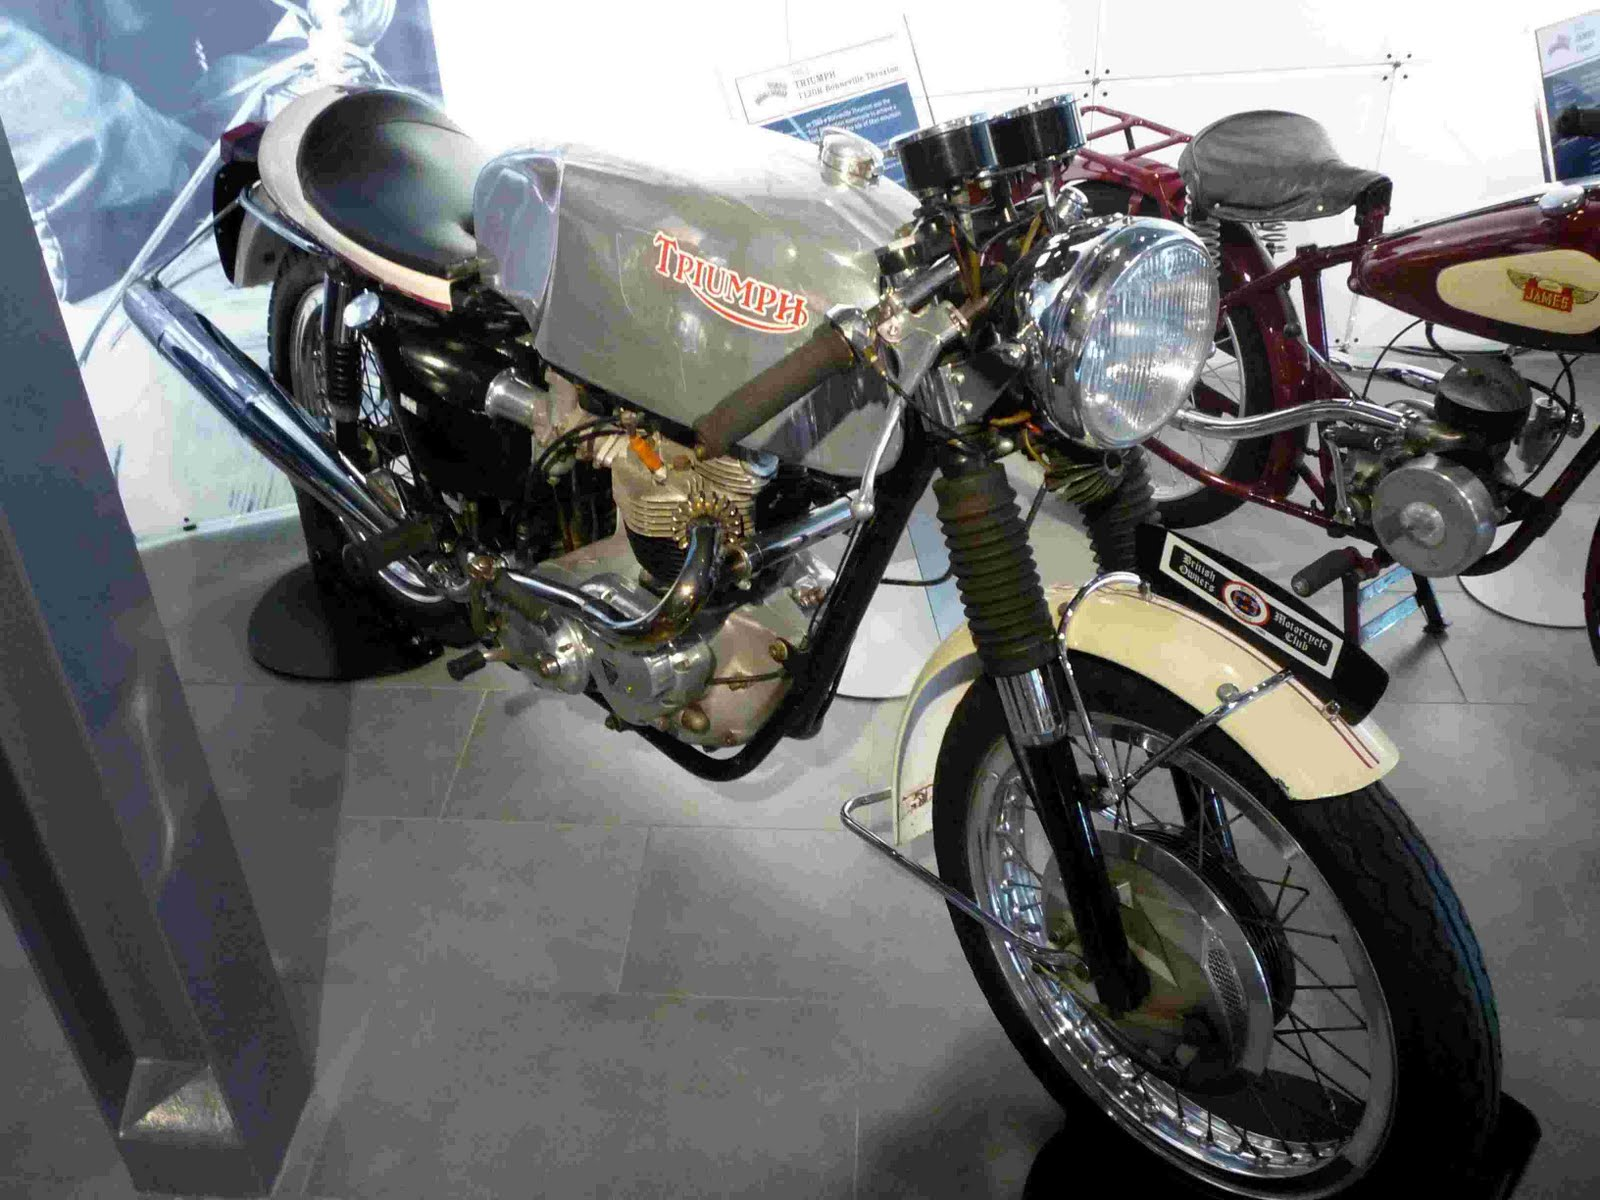 Bucky's Ride: Visit to the Deeley Motorcycle Exposition